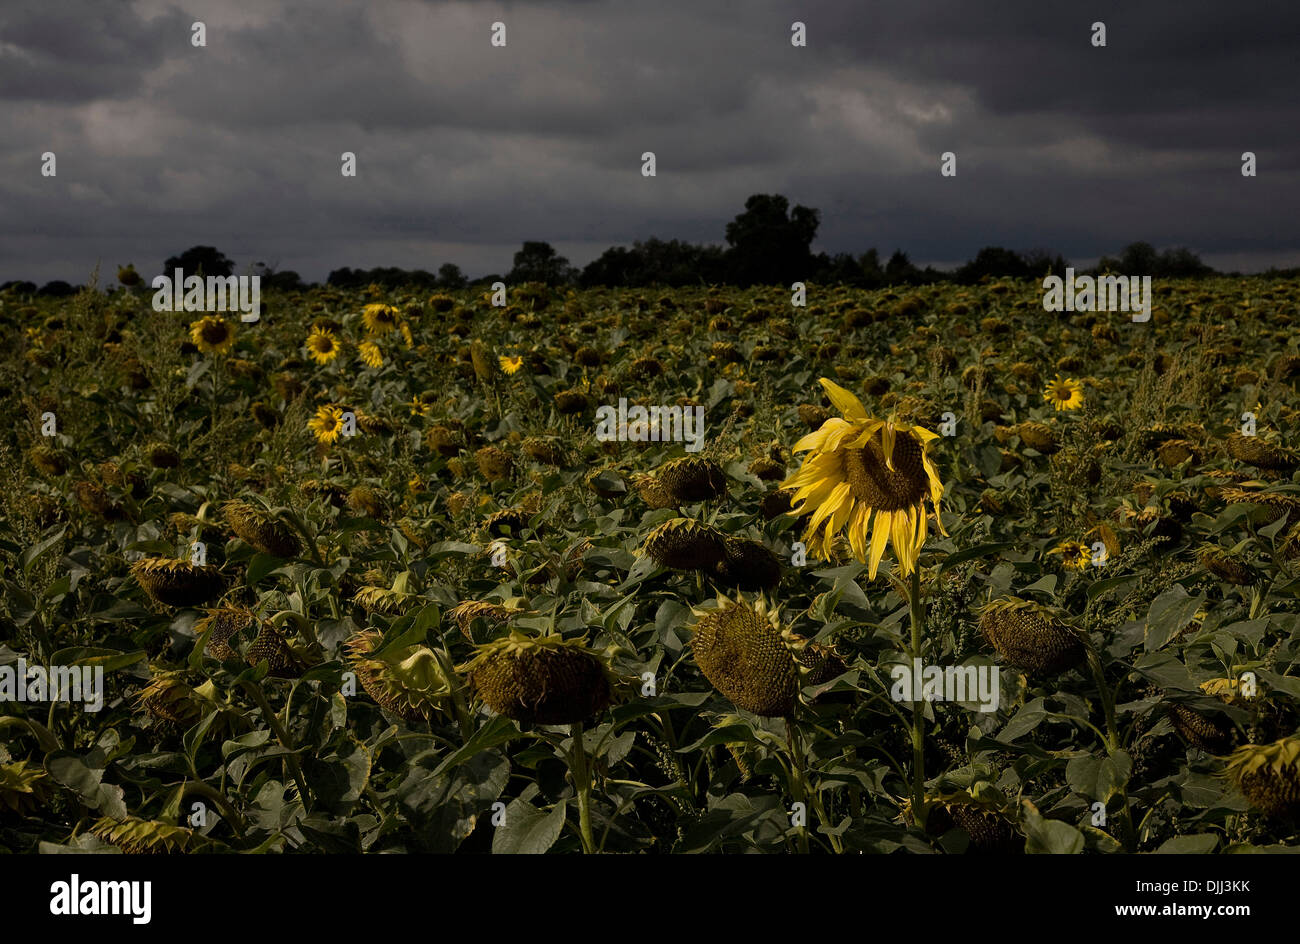 Field of dying sunflowers - Stock Image